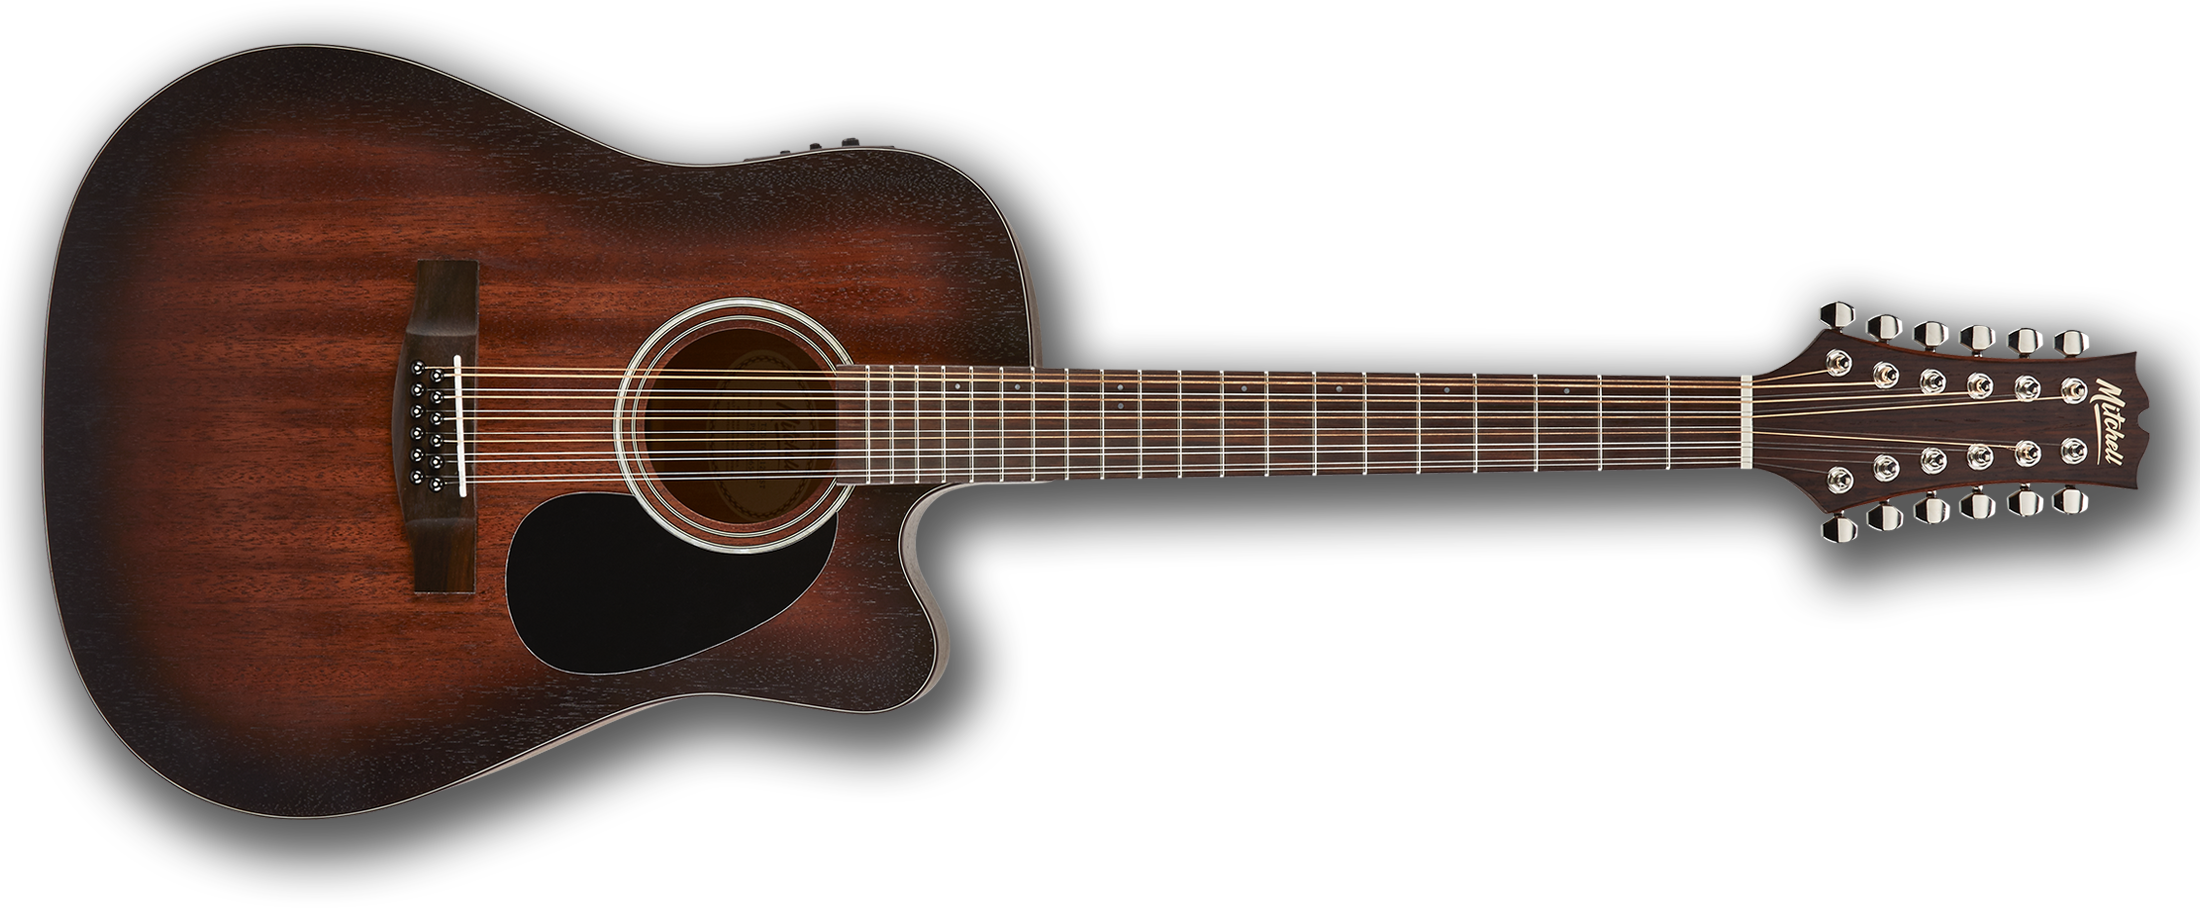 Mitchell T331TCE 12-String Dreadnought Acoustic Guitar Terra Series